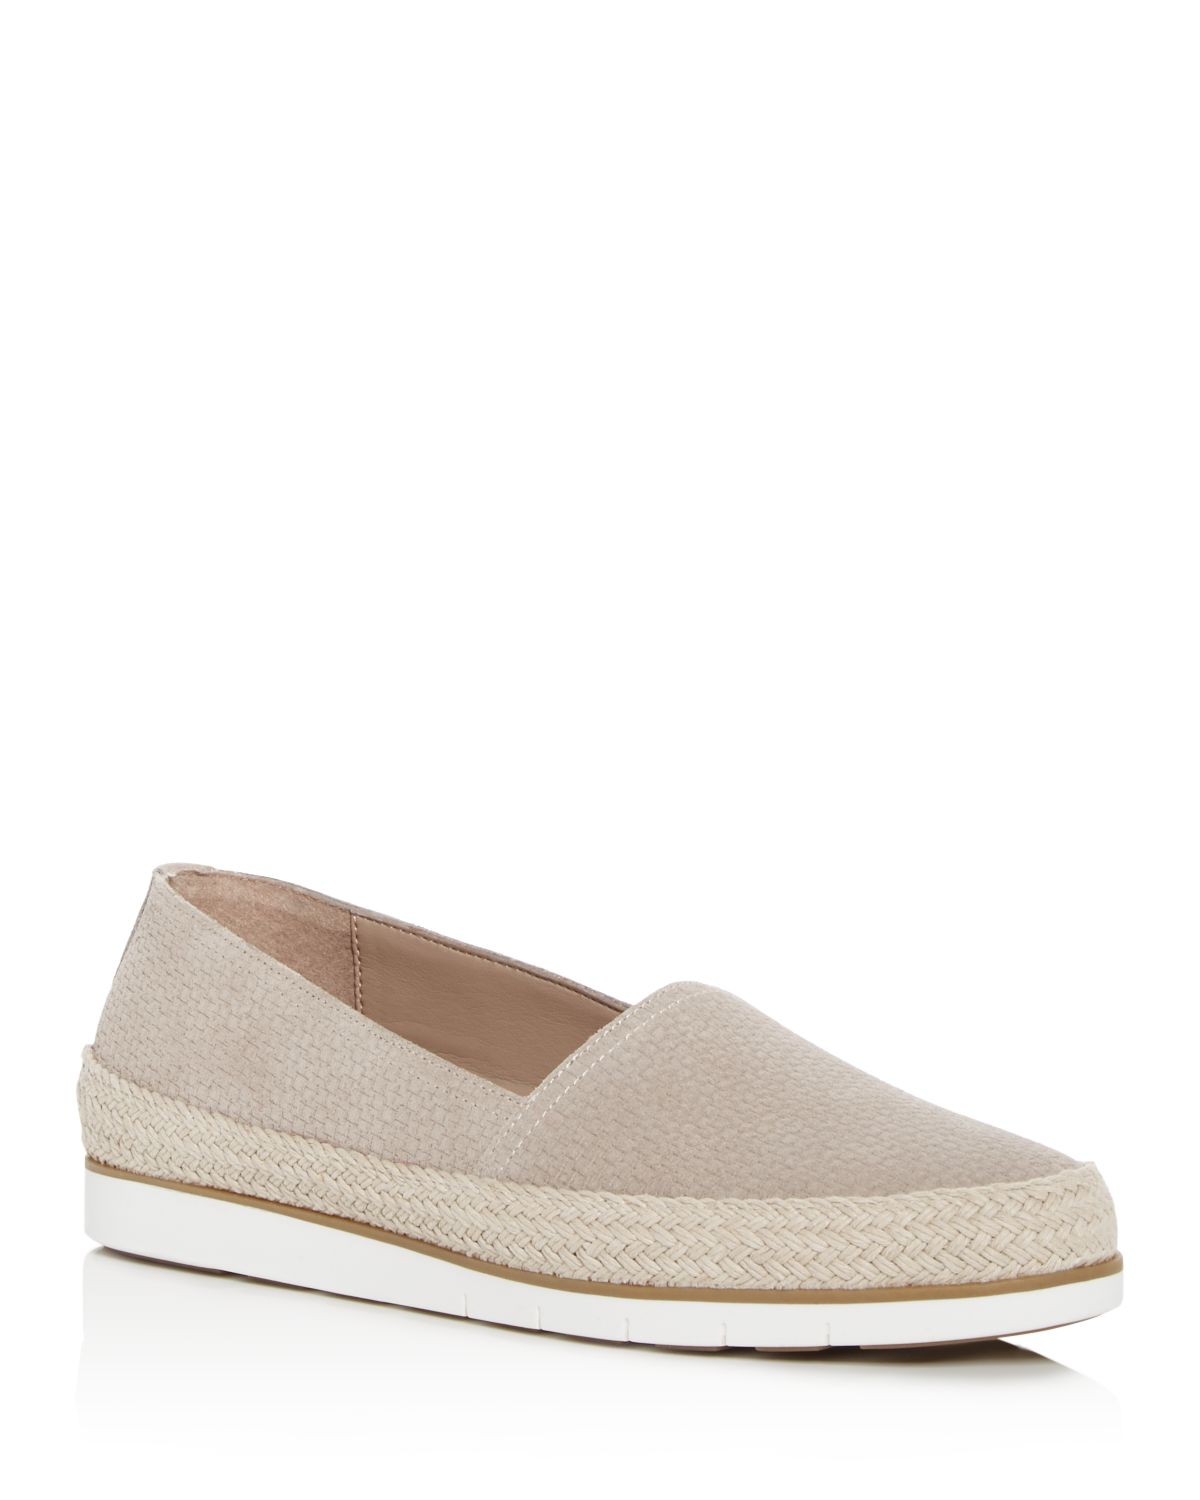 Palm Espadrille Embossed Suede Loafers